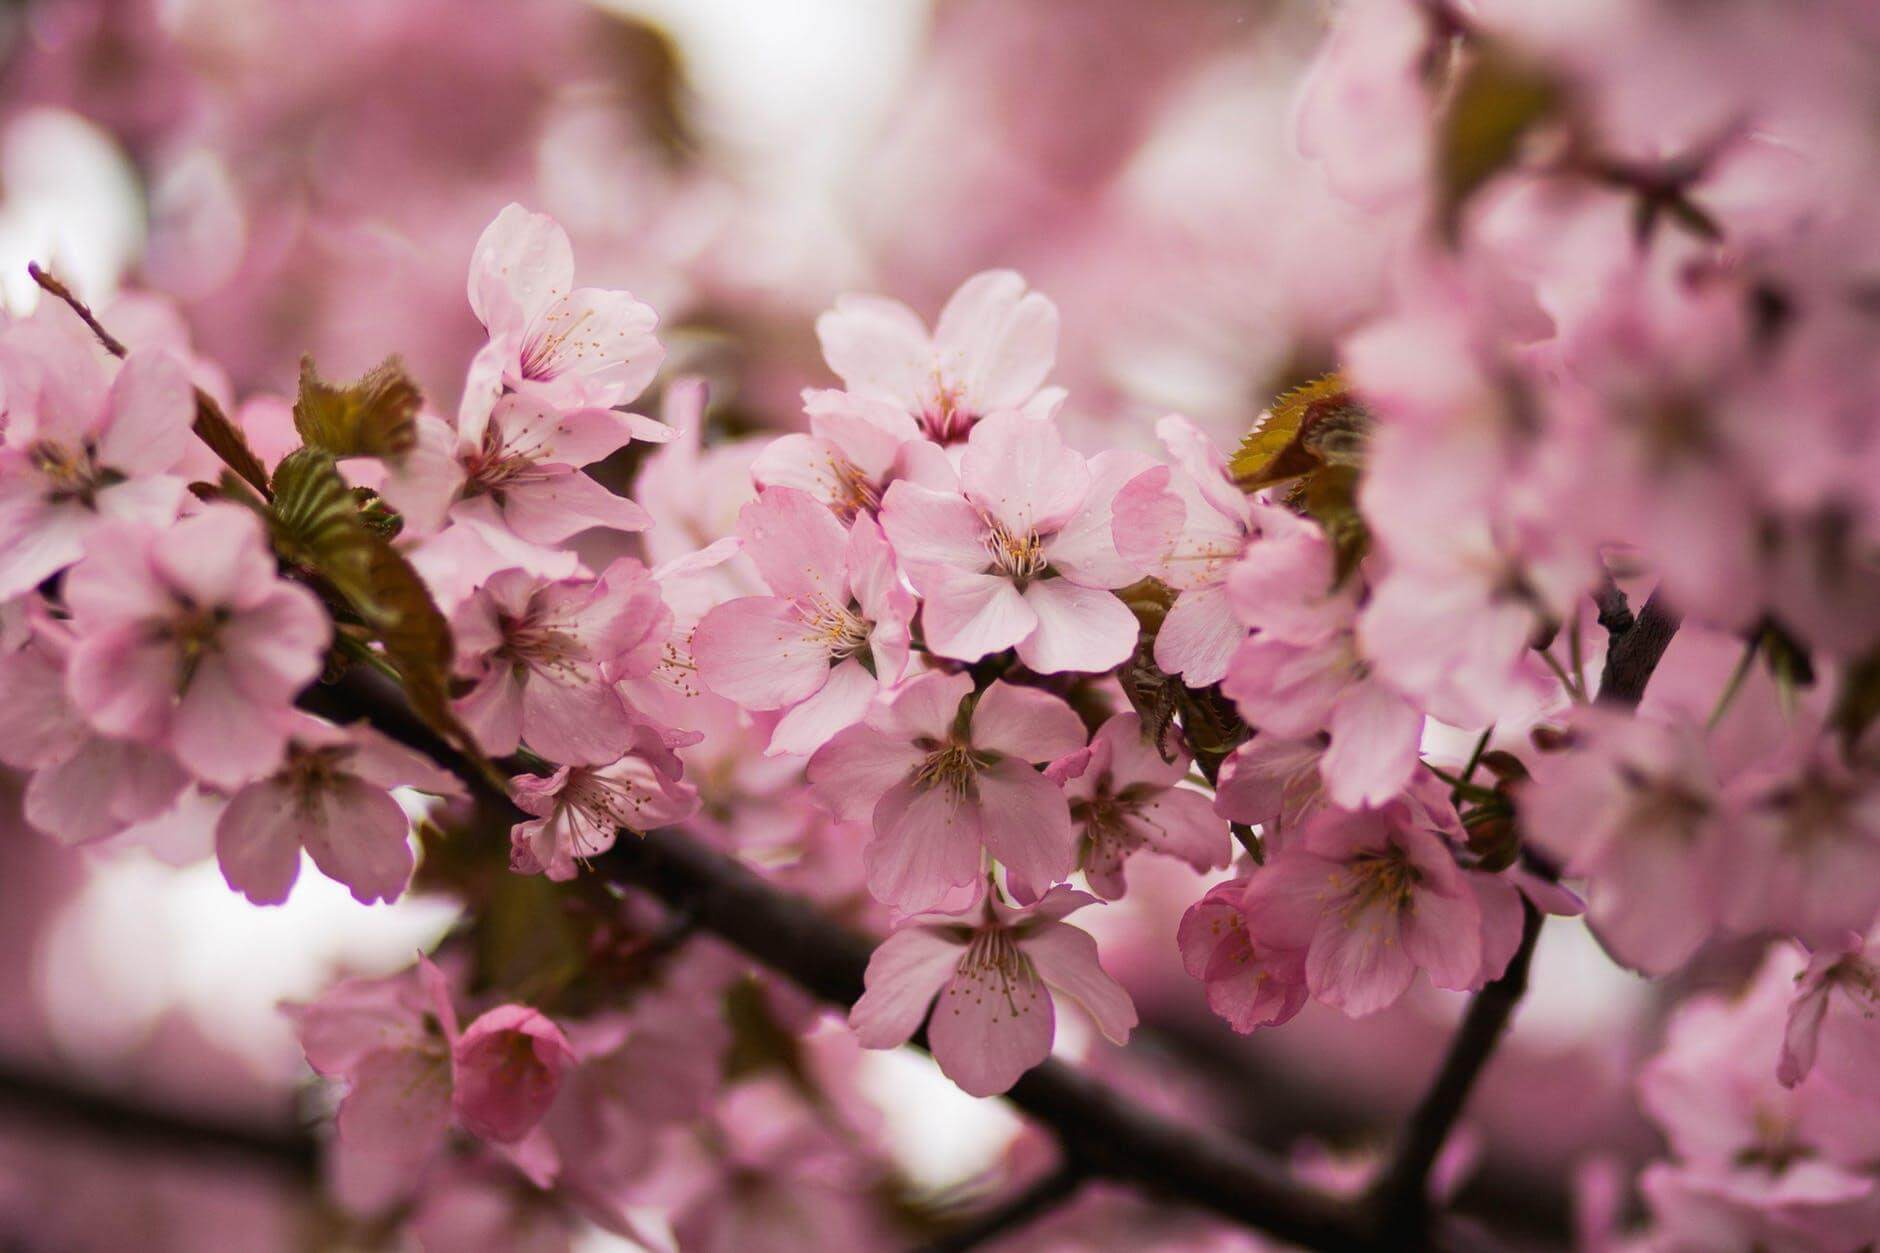 Wonderful blossoms that make your affection step ahead